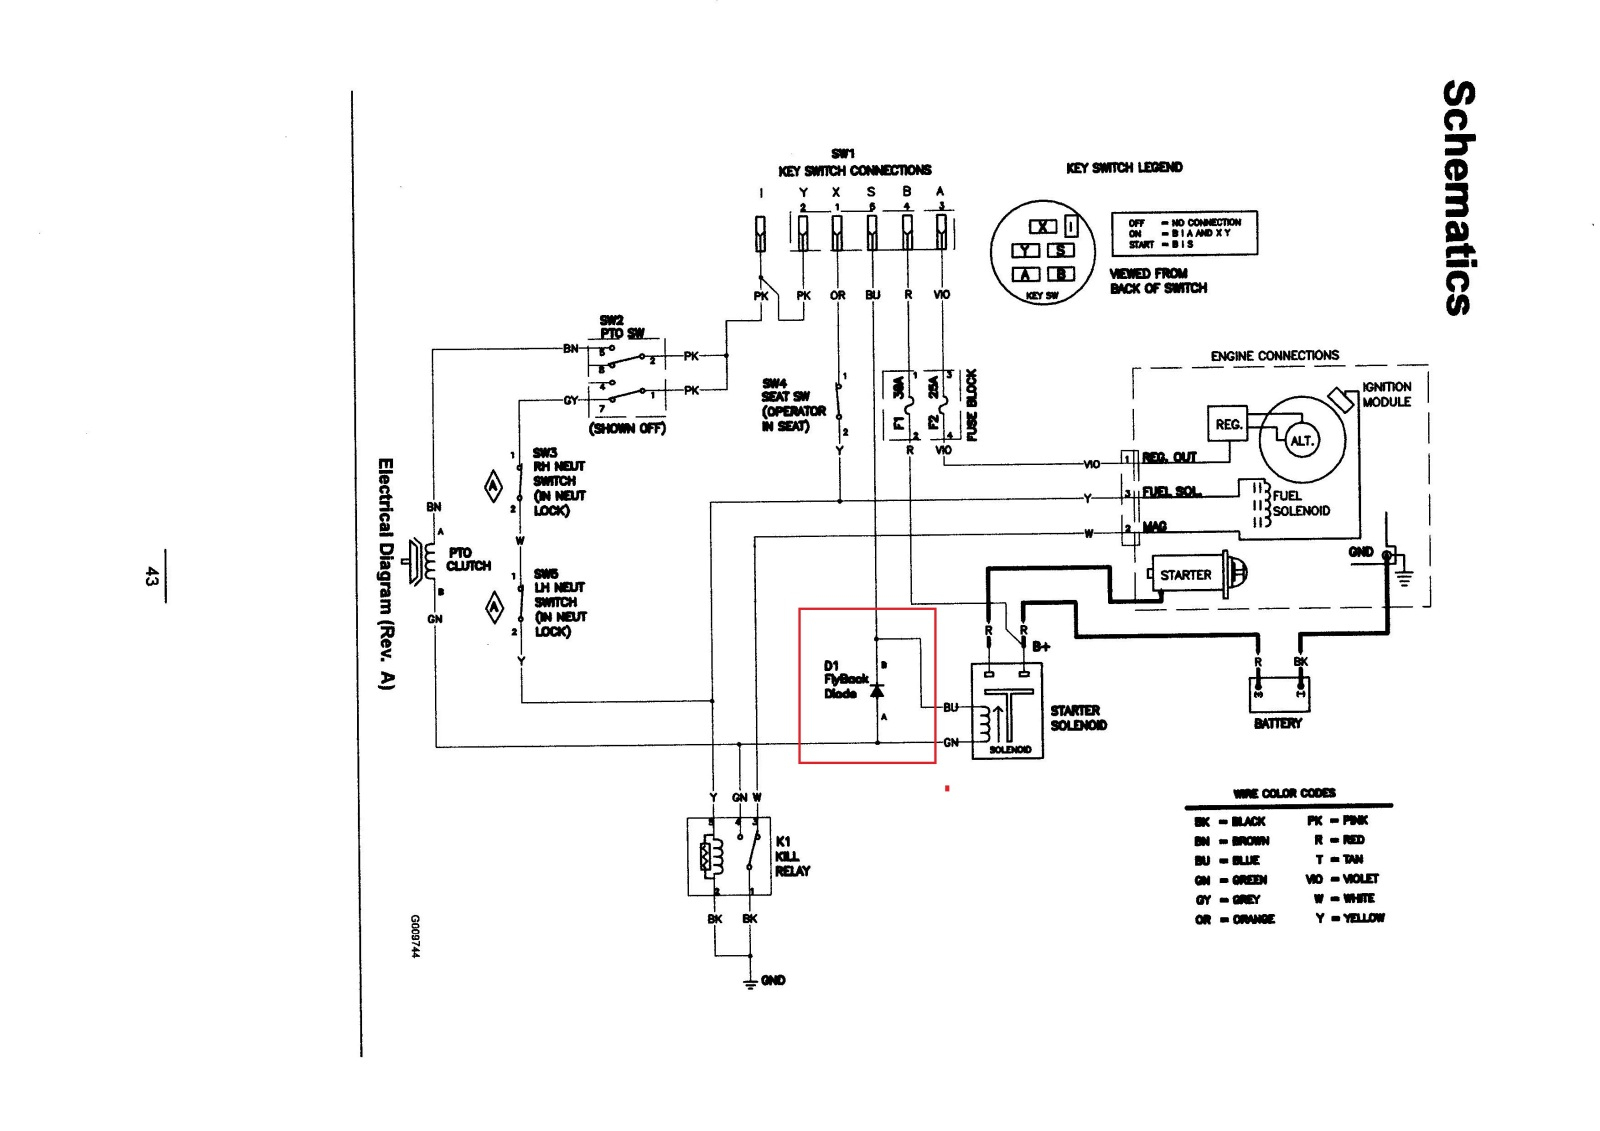 Tremendous Ford Tractor Ignition Switch Wiring Diagram Wirings Diagram Wiring 101 Archstreekradiomeanderfmnl